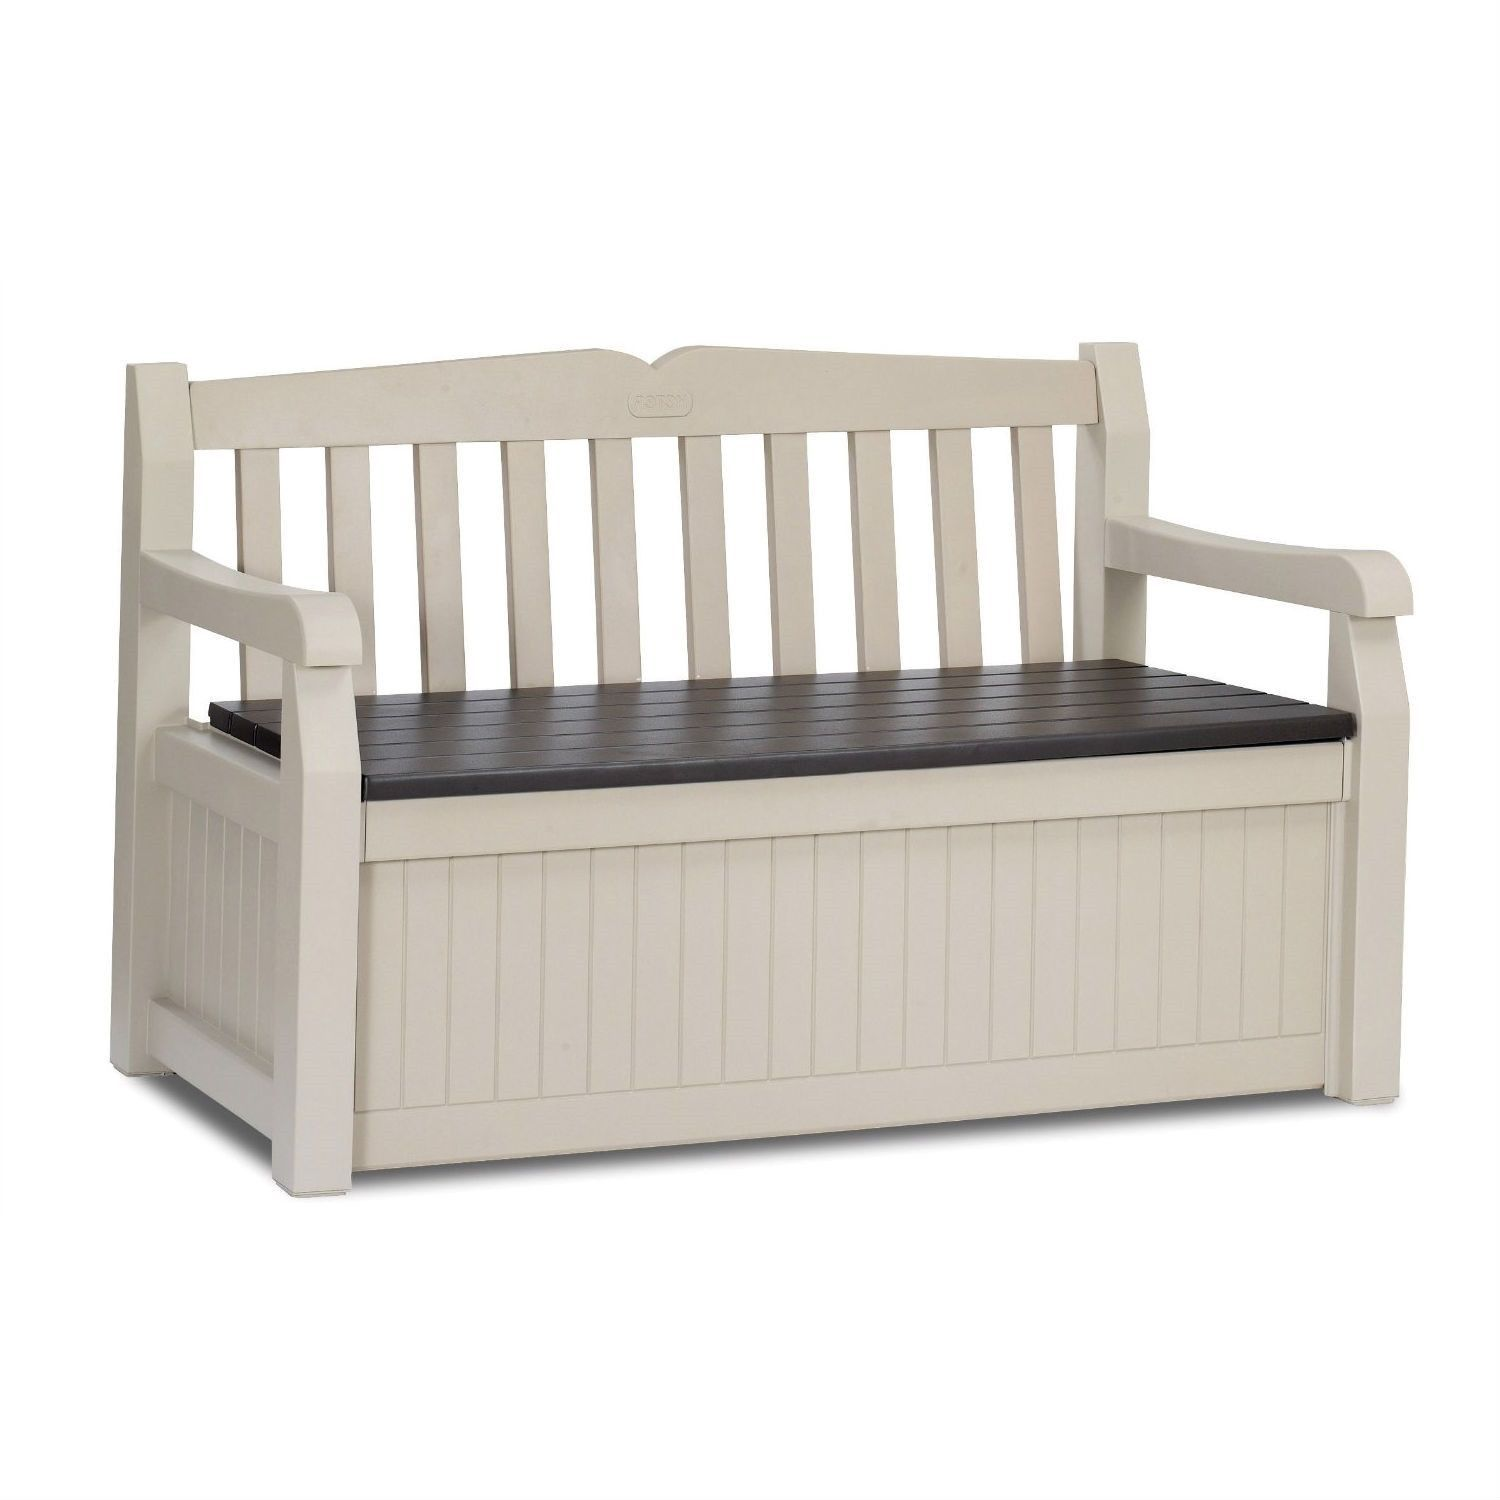 Patio Bench With Arm Rest U0026 Storage Box In Beige Weather Resistant Resin